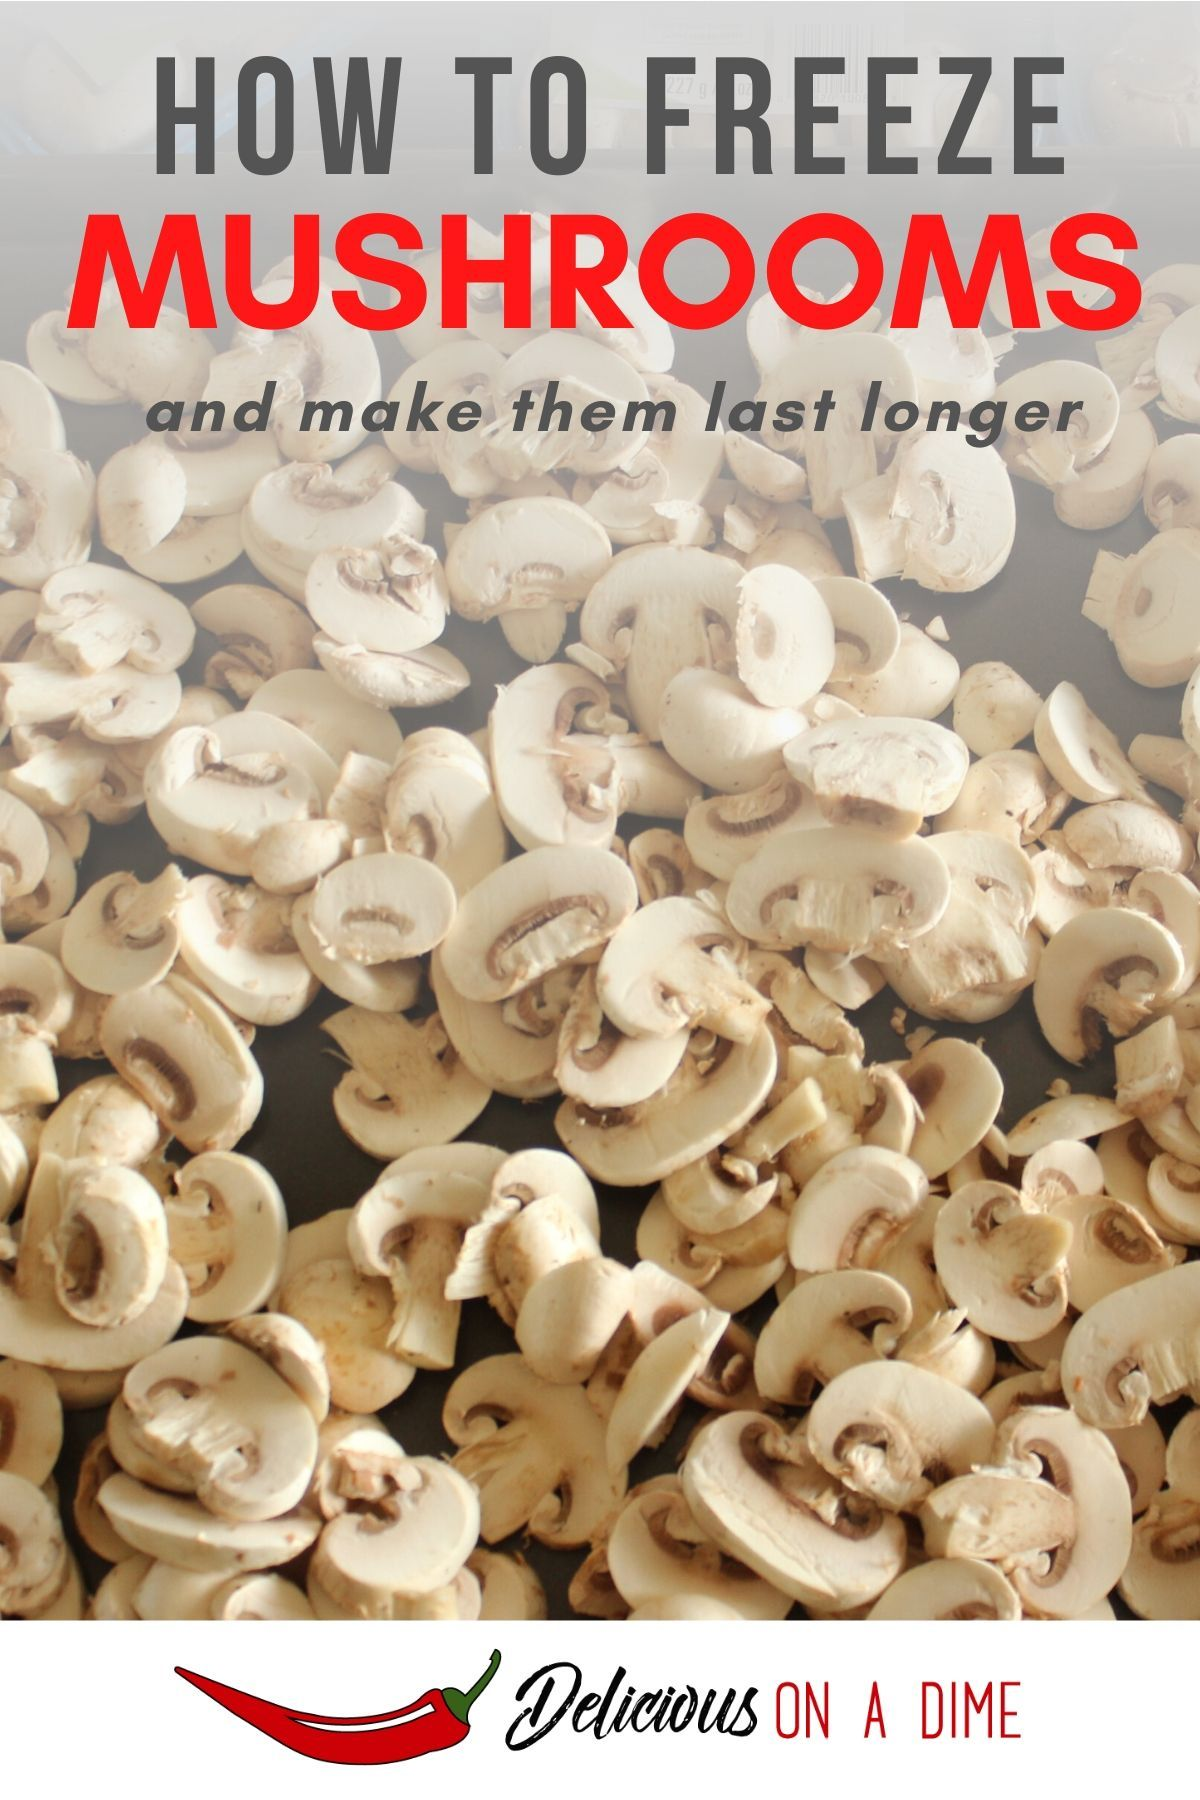 How To Freeze Mushrooms The Super Easy Way In 2020 Stuffed Mushrooms Freezing Mushrooms Save Money On Groceries,Call Center Work From Home Philippines